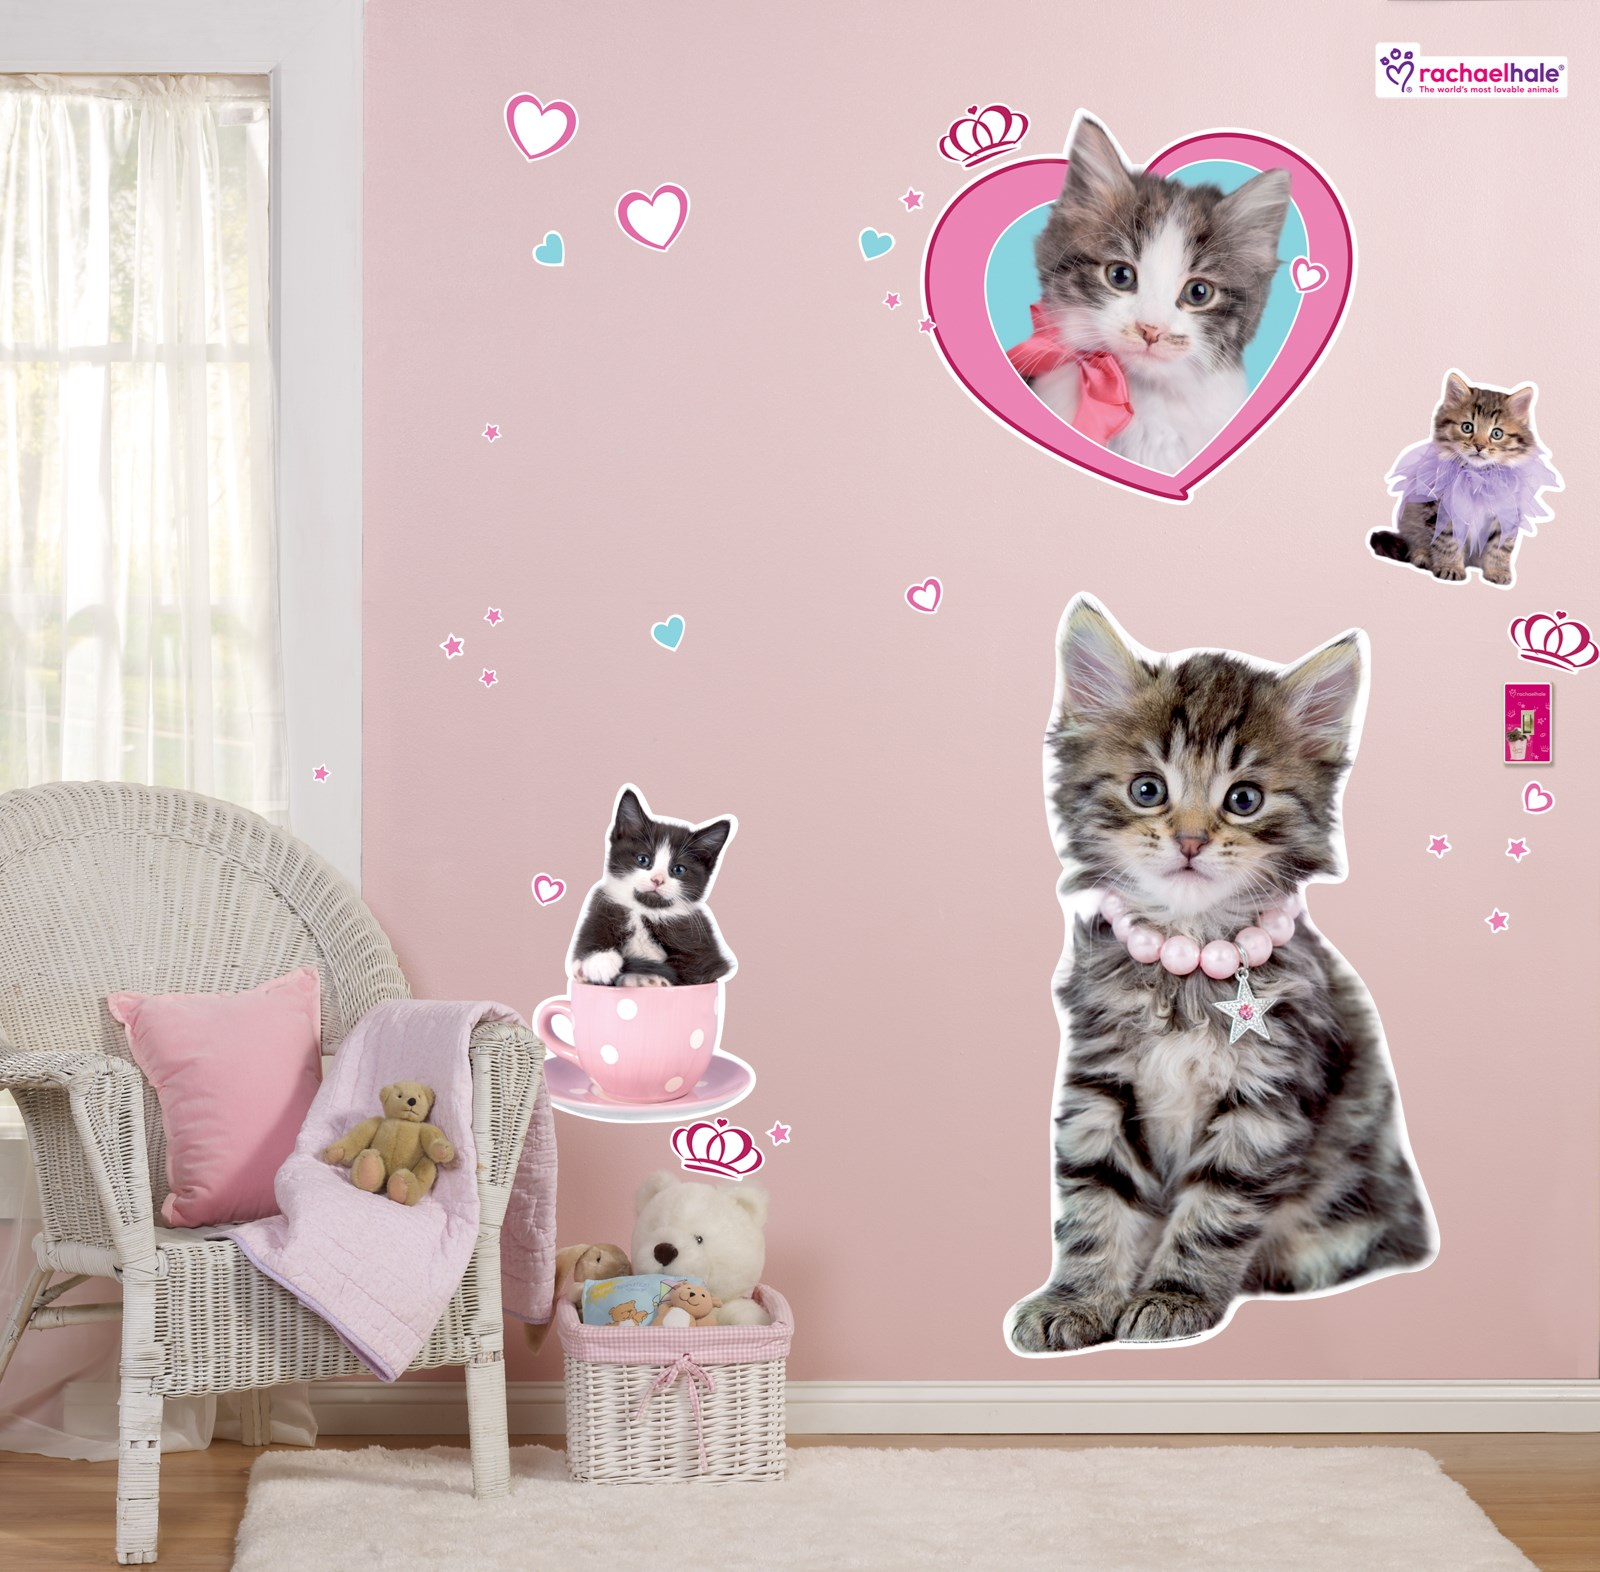 Rachaelhale glamour cats giant wall decals birthdayexpress default image rachaelhale glamour cats giant wall decals amipublicfo Gallery